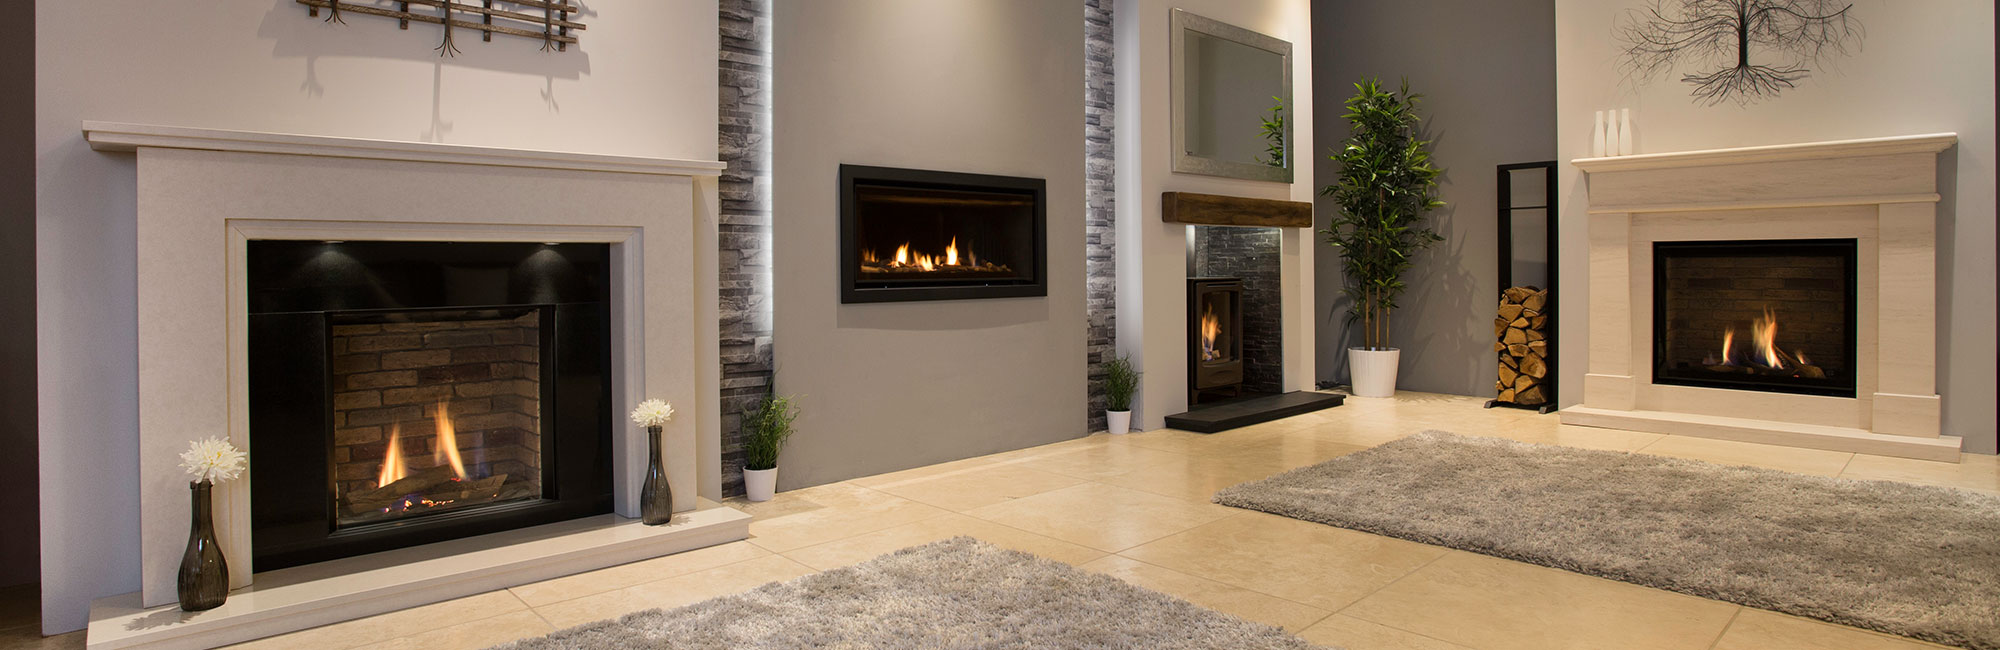 fireplaces fireplace en new a products view designer series gas city regency york